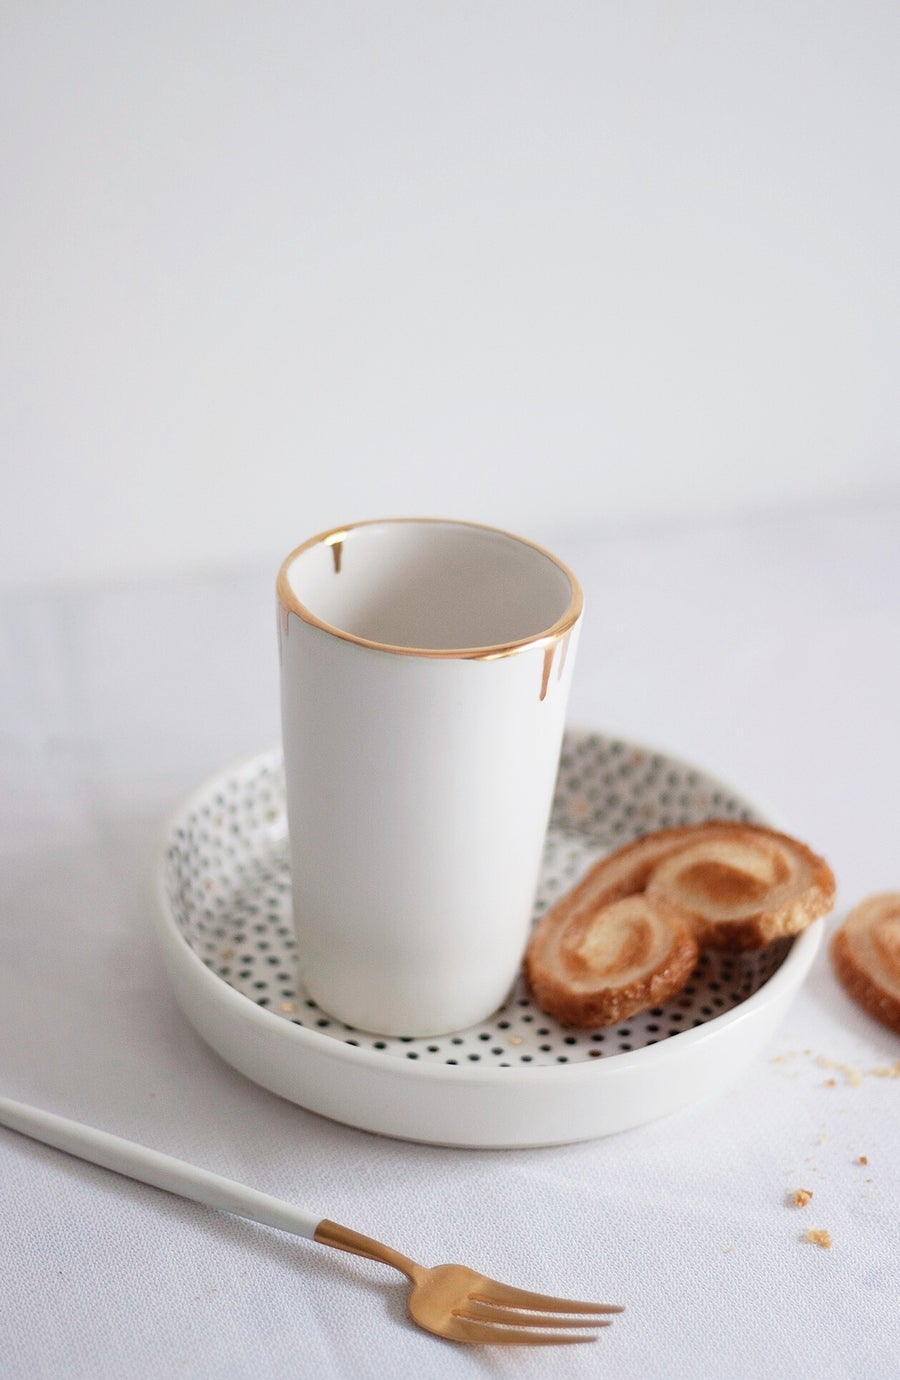 Image of White and Gold Dripping Cup